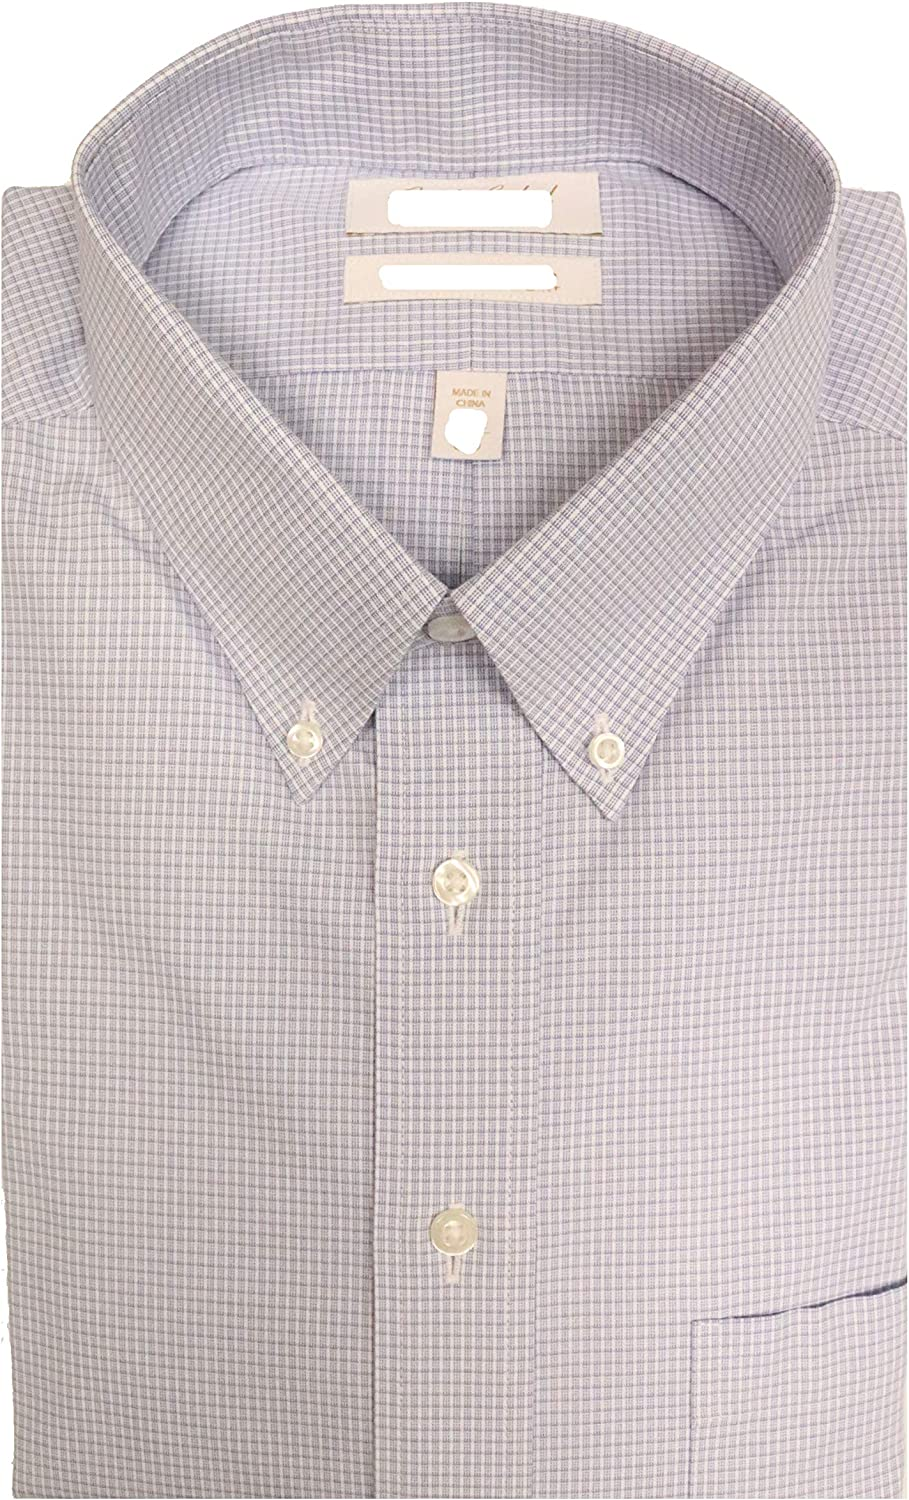 Gold Label Roundtree & Yorke Non-Iron Fitted Button Down Plaid Dress Shirt G16A0032 Blue